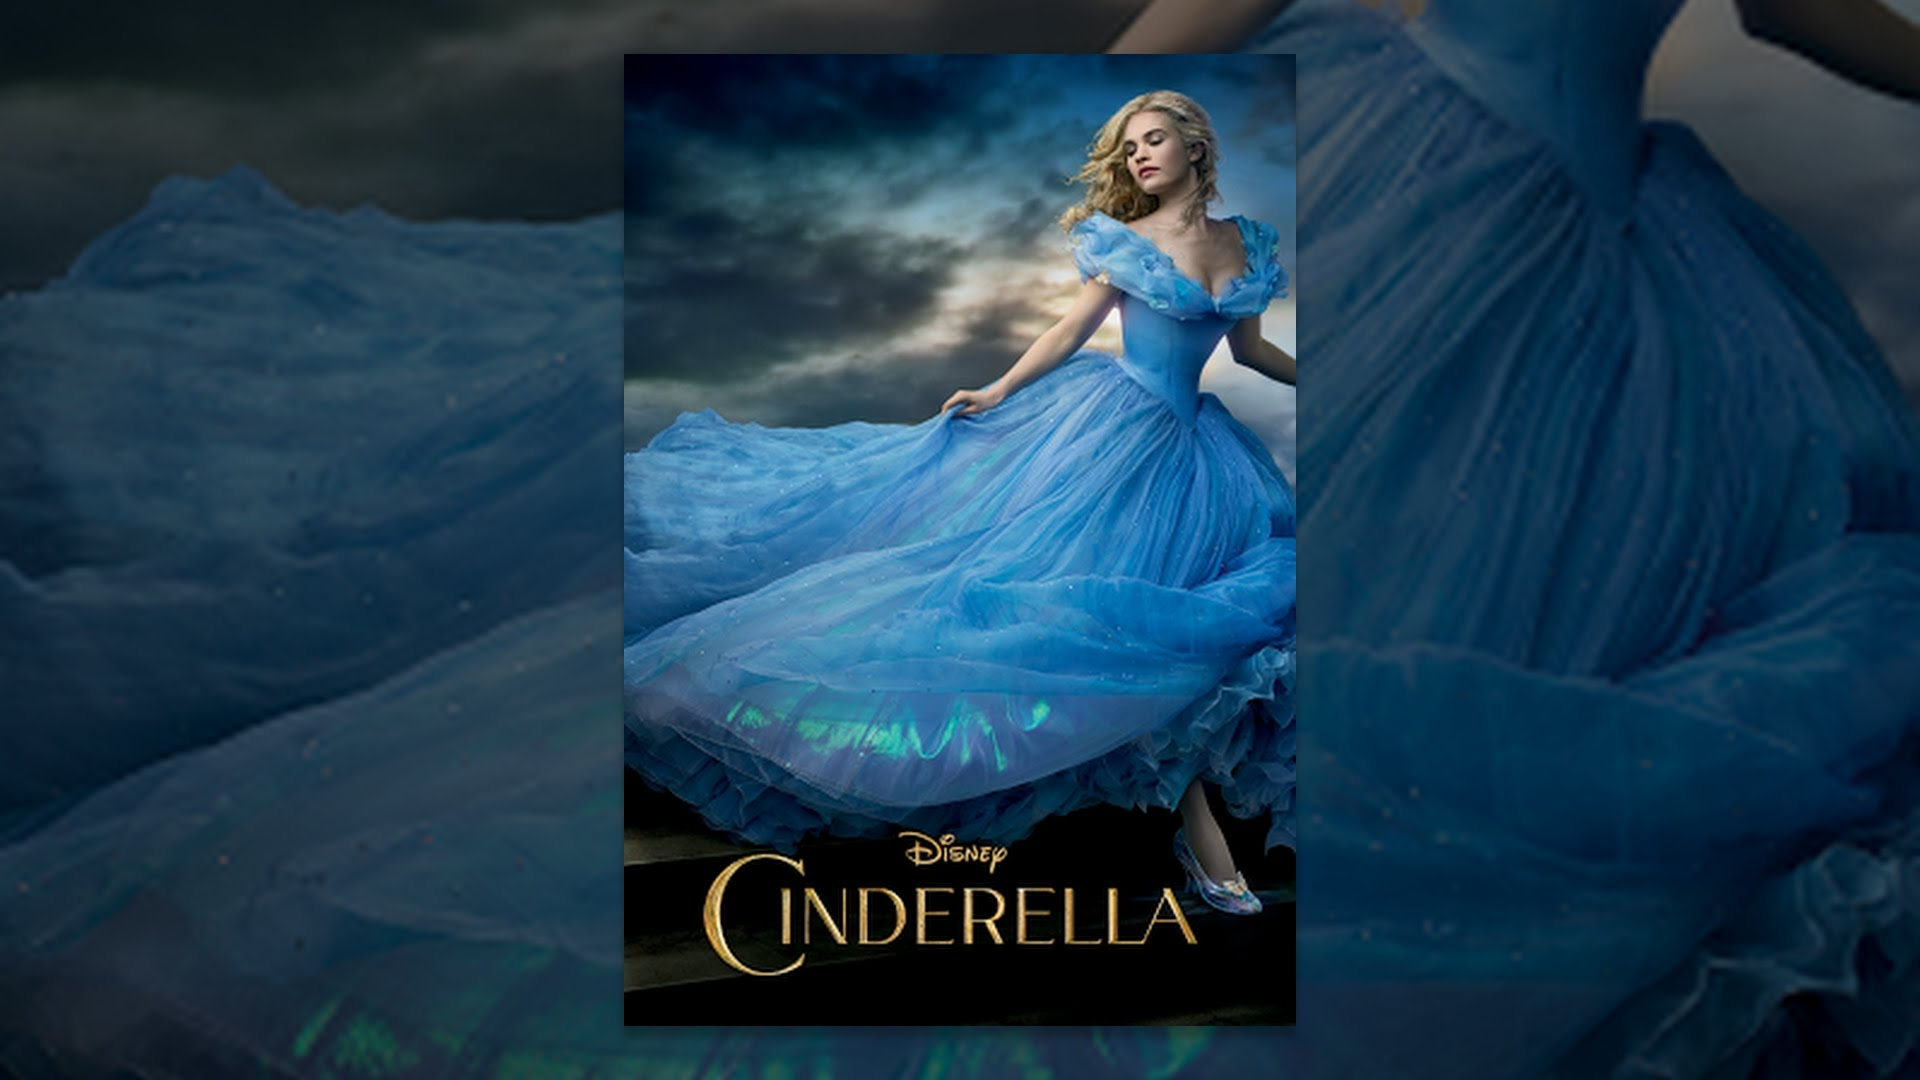 List of All Cinderella Movies A History 1899 to 2015